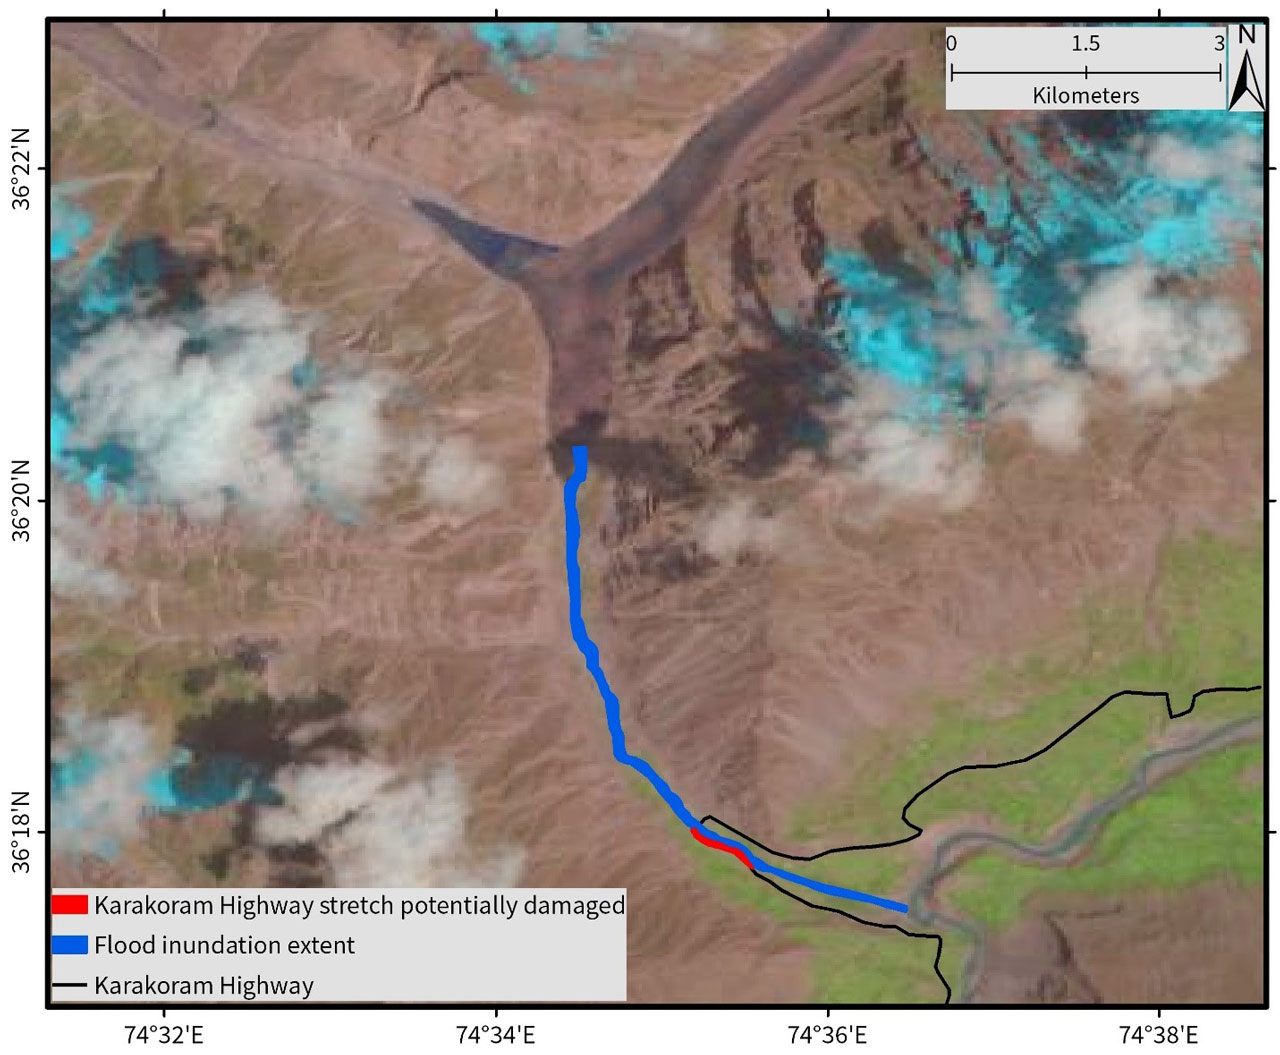 Extent of inundation due to the GLOF on 29 May 2020 at 10:08 AM local time